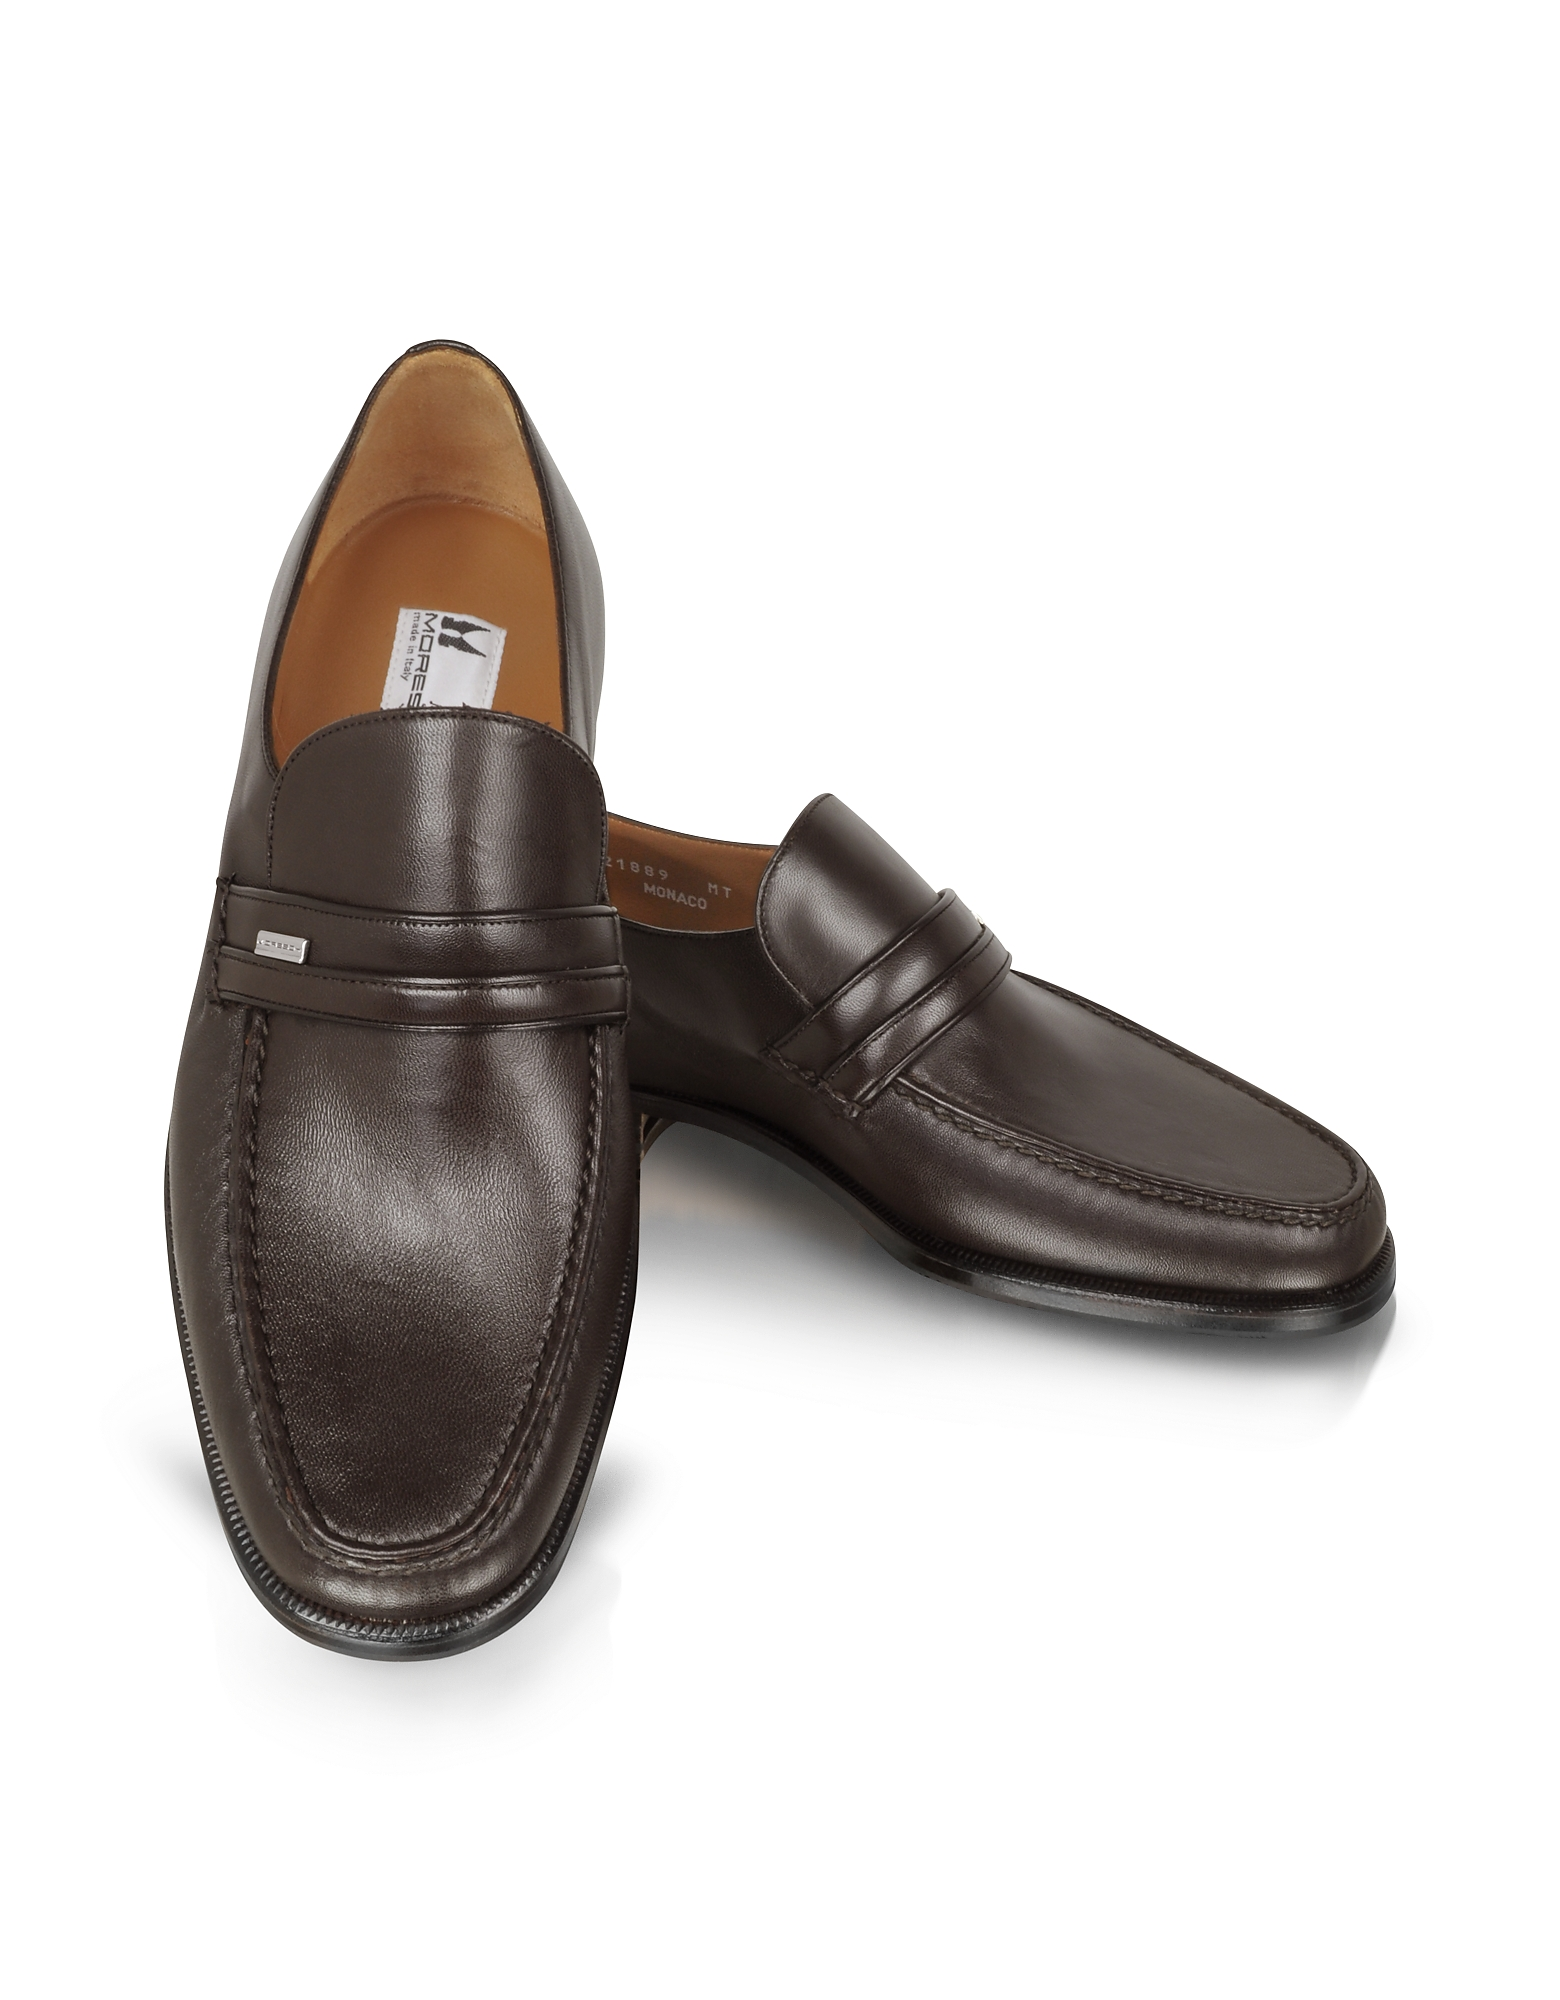 Moreschi Shoes, Monaco Wide Brown Leather Loafers